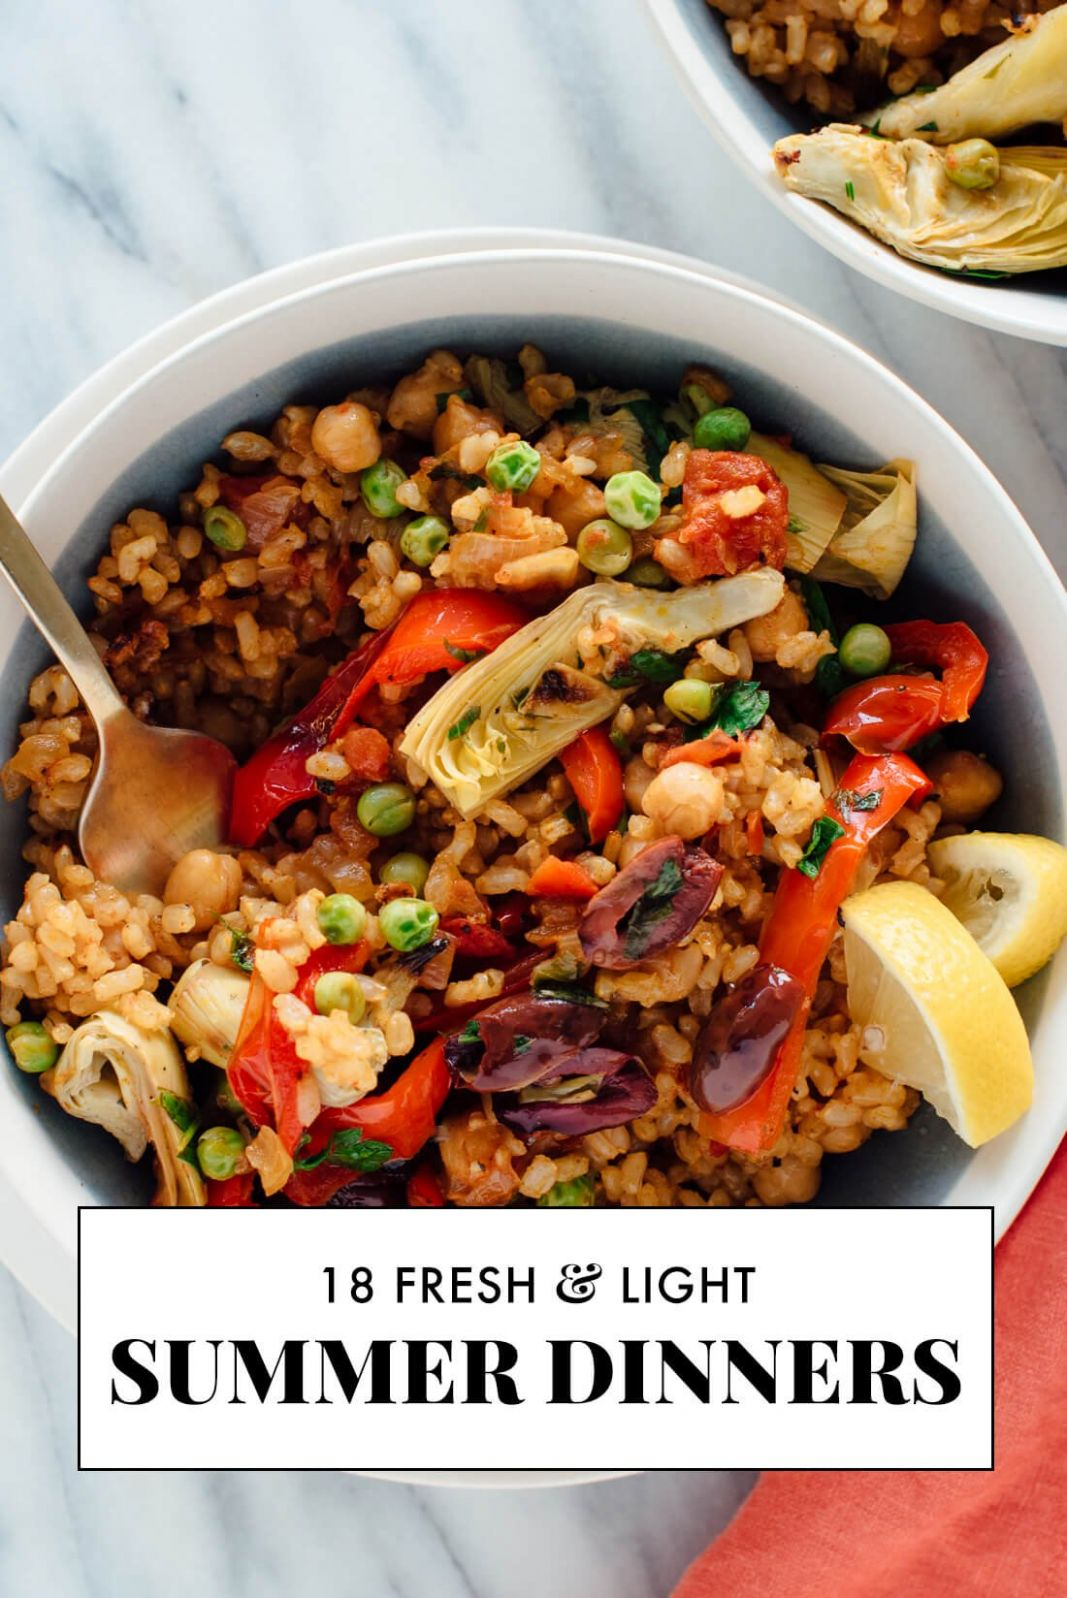 8 Light Summer Dinner Recipes - Cookie and Kate